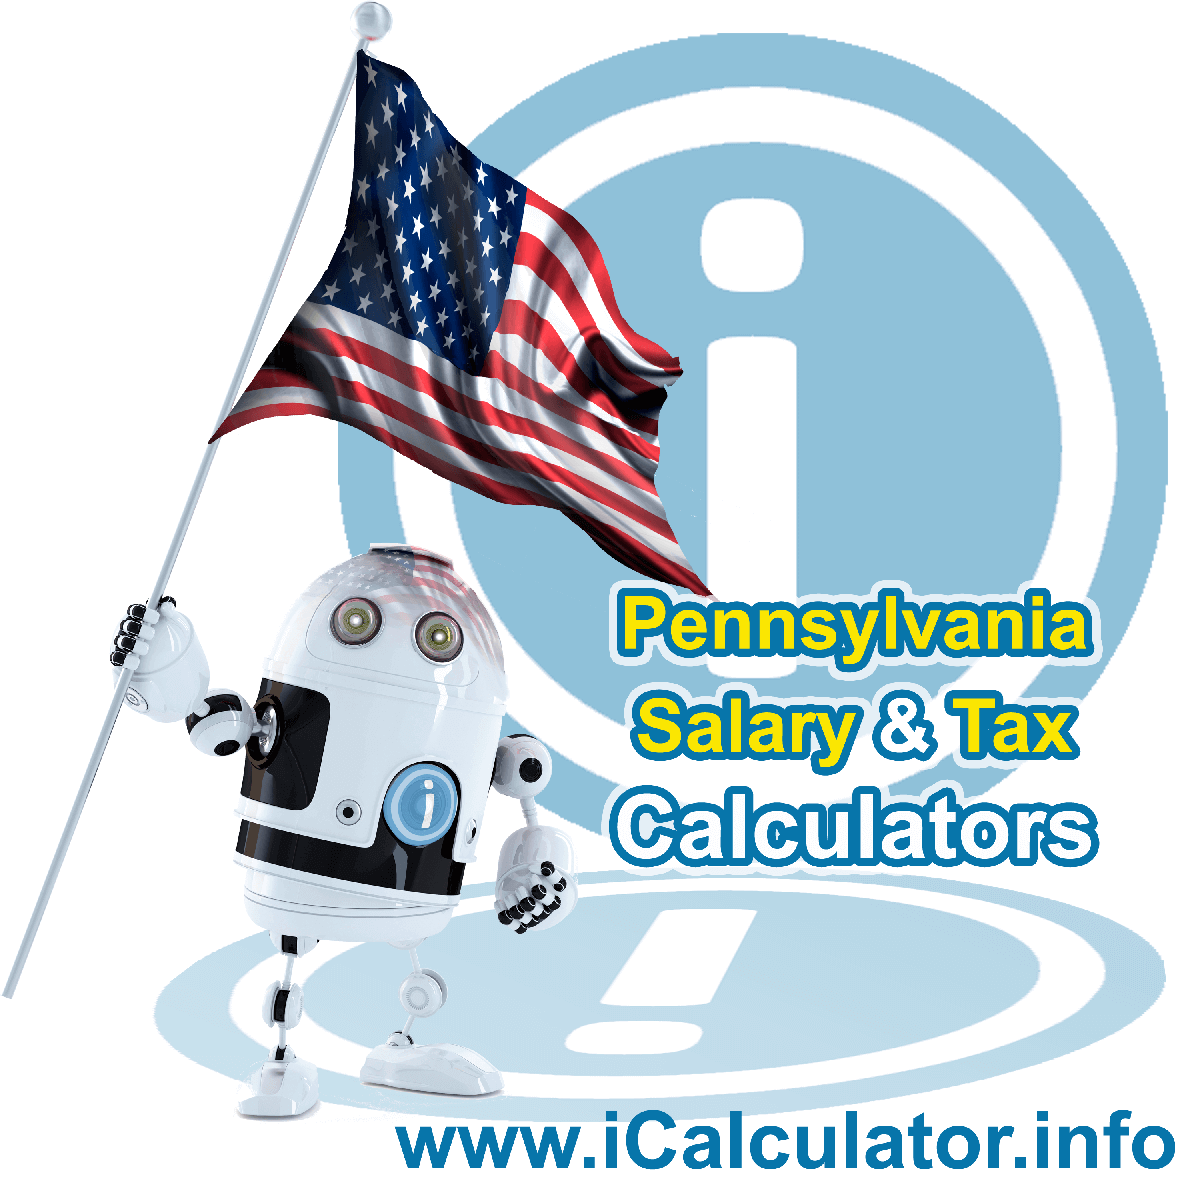 Pennsylvania Salary Calculator 2021 | iCalculator™ | The Pennsylvania Salary Calculator allows you to quickly calculate your salary after tax including Pennsylvania State Tax, Federal State Tax, Medicare Deductions, Social Security, Capital Gains and other income tax and salary deductions complete with supporting Pennsylvania state tax tables